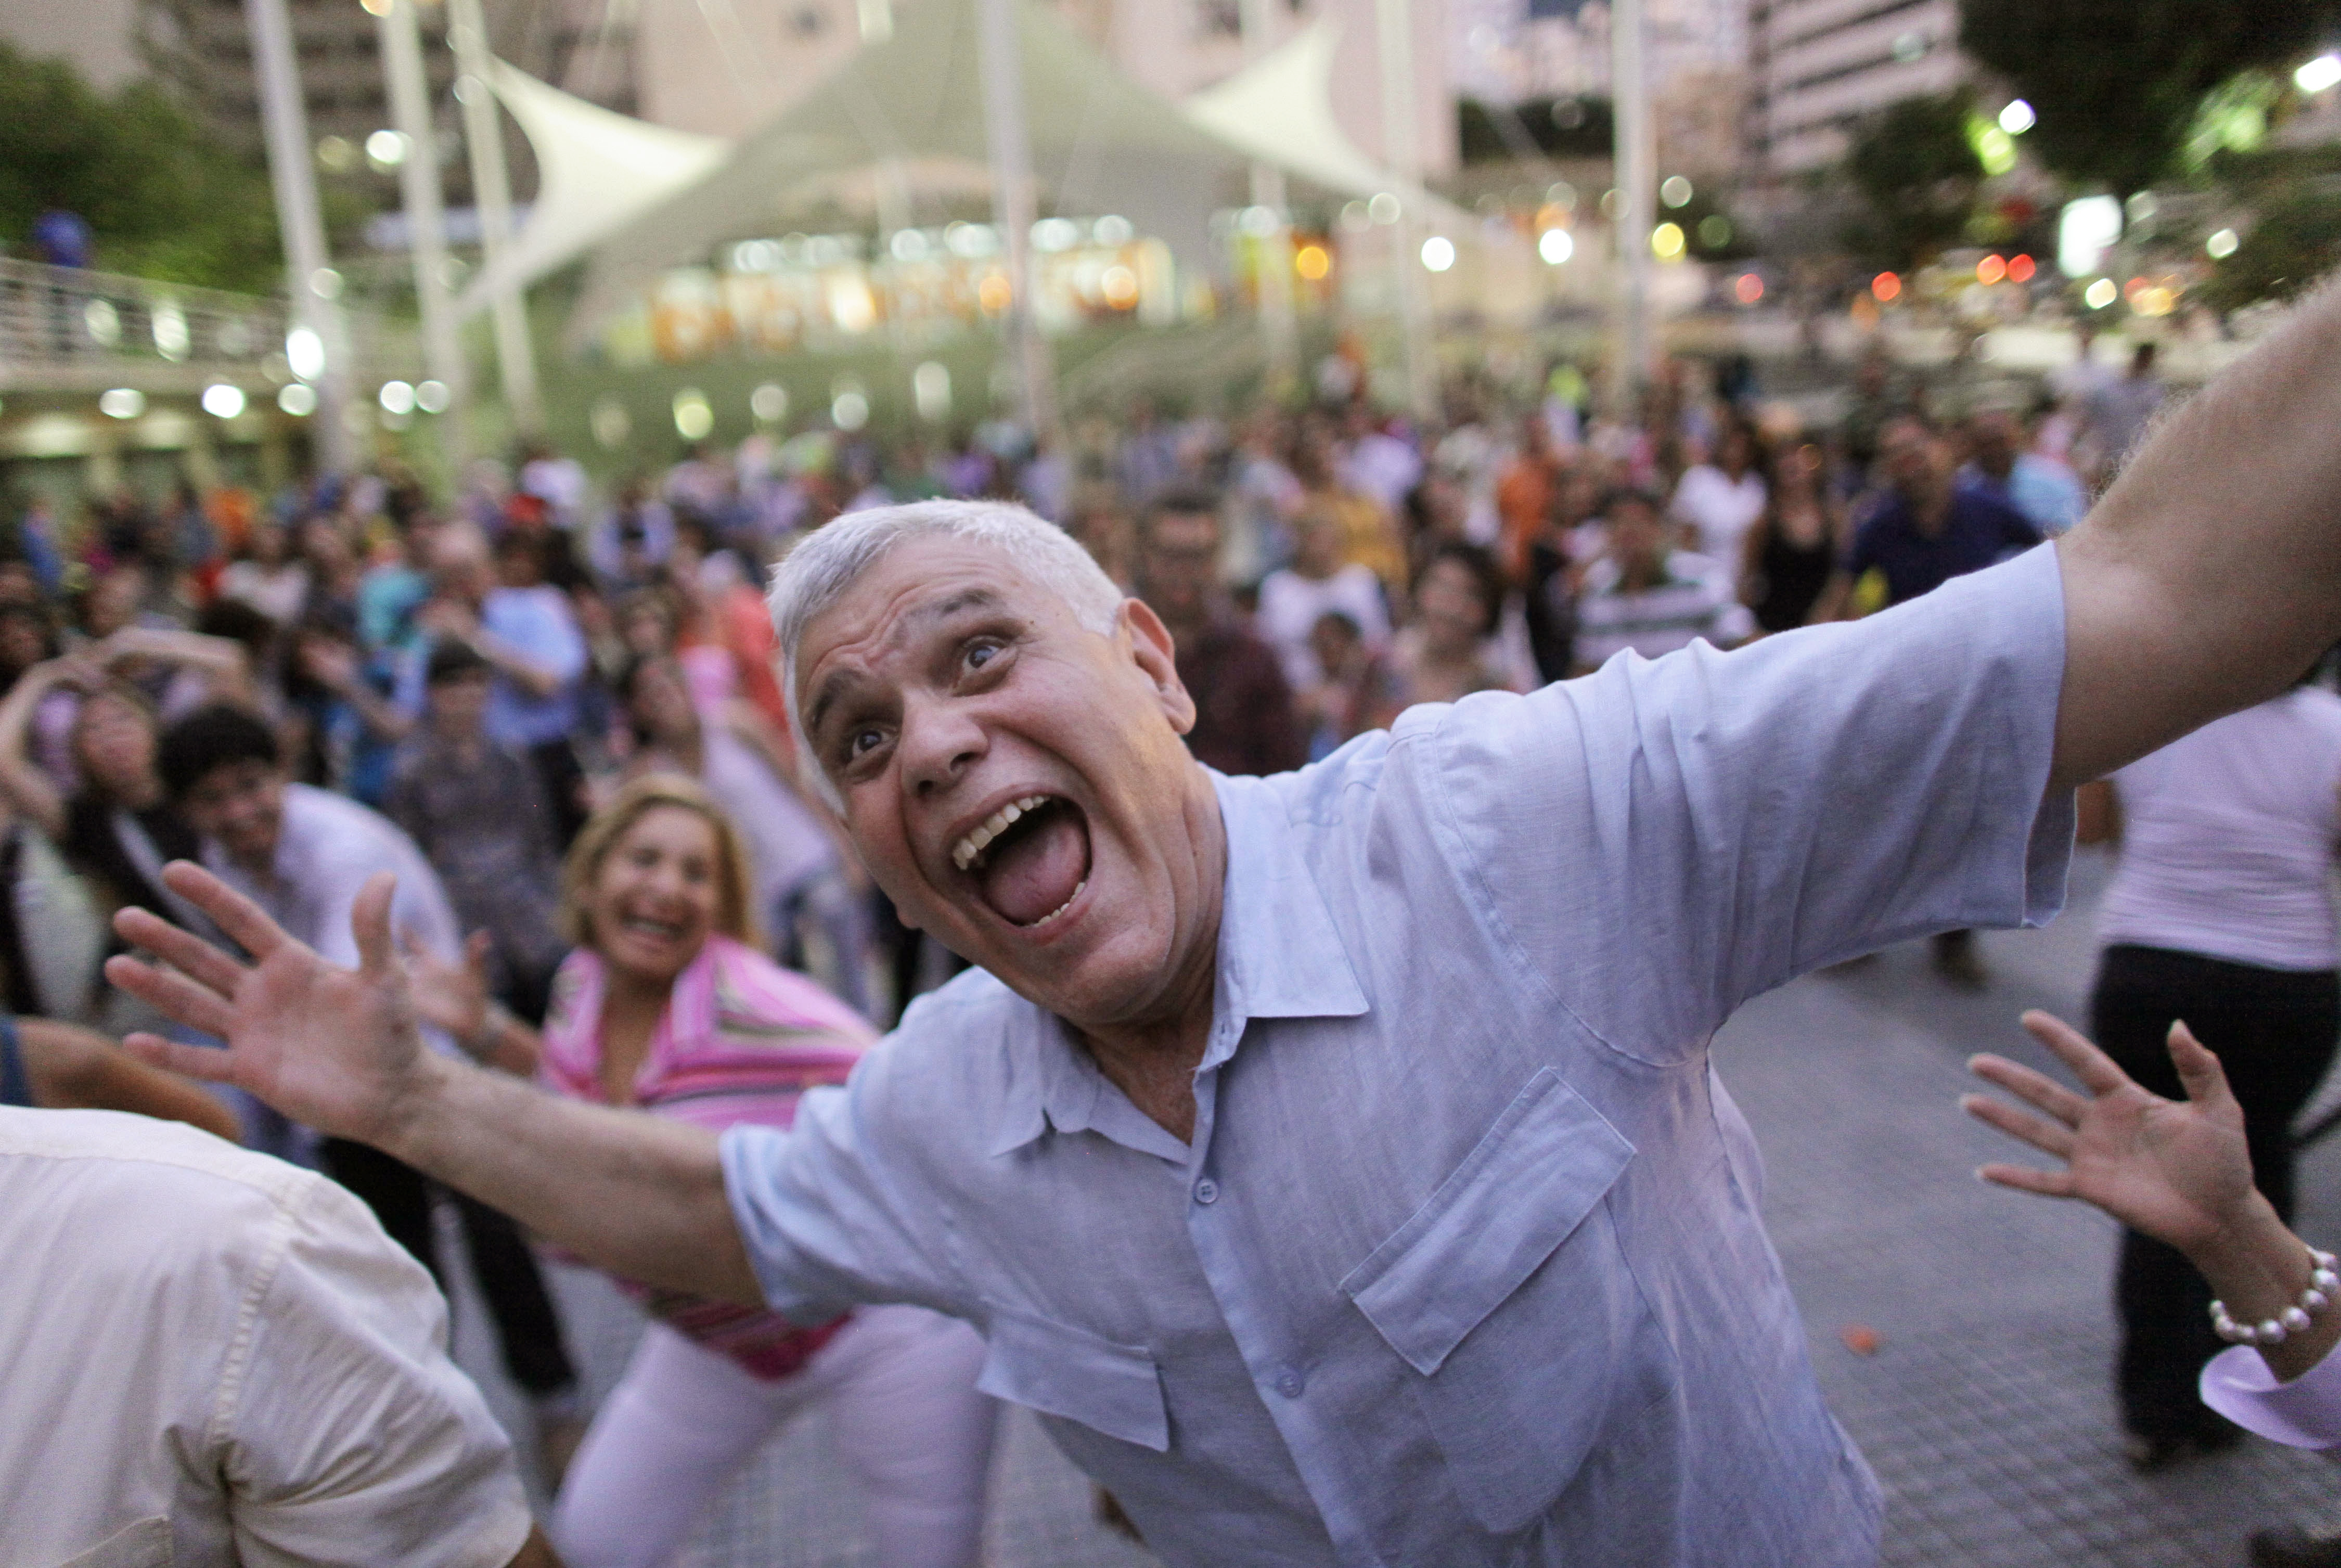 A man laughs during a session of laugher therapy in a public plaza in Caracas, Venezuela. Laughter is spreading as a pathway to good health, as experts say that it helps refresh the mind and body, eases stress and improves the lymphatic and circulatory systems.